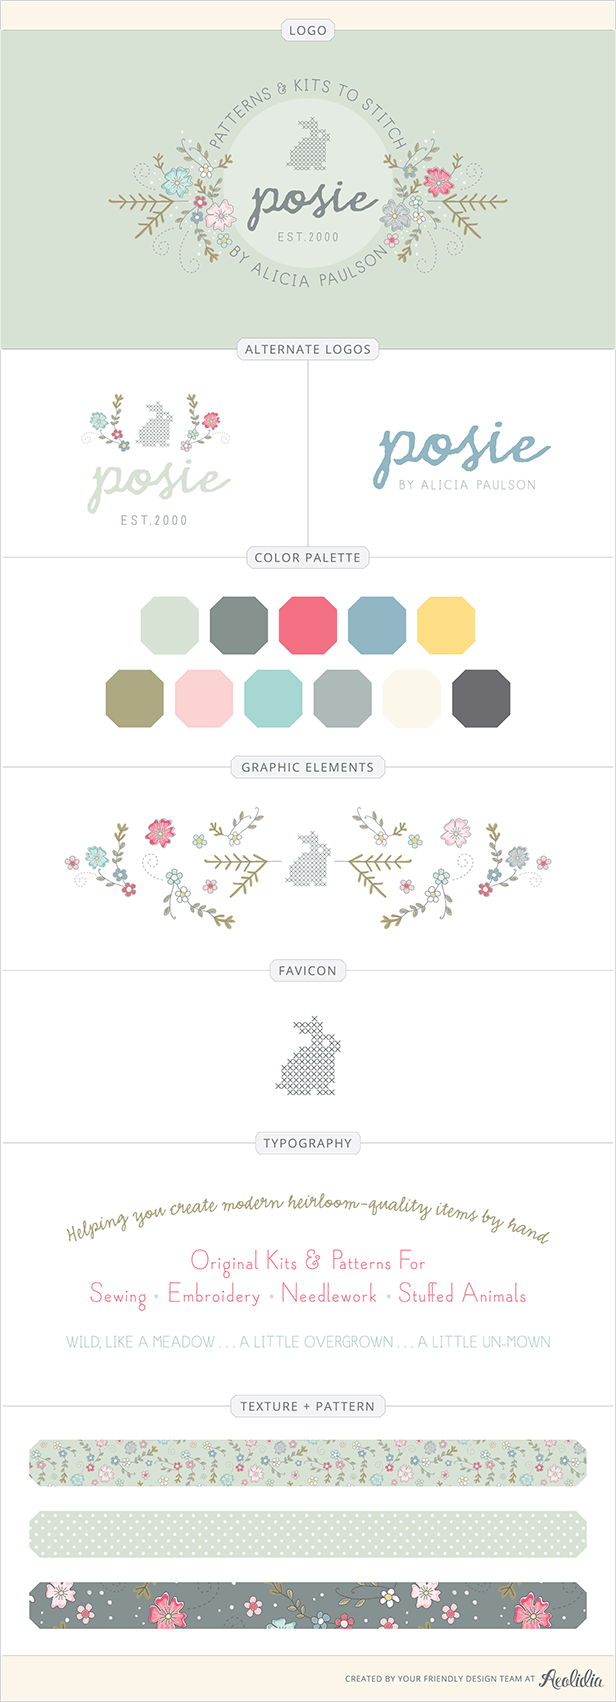 Branding Details For Posie A Craft Business Aeolidia